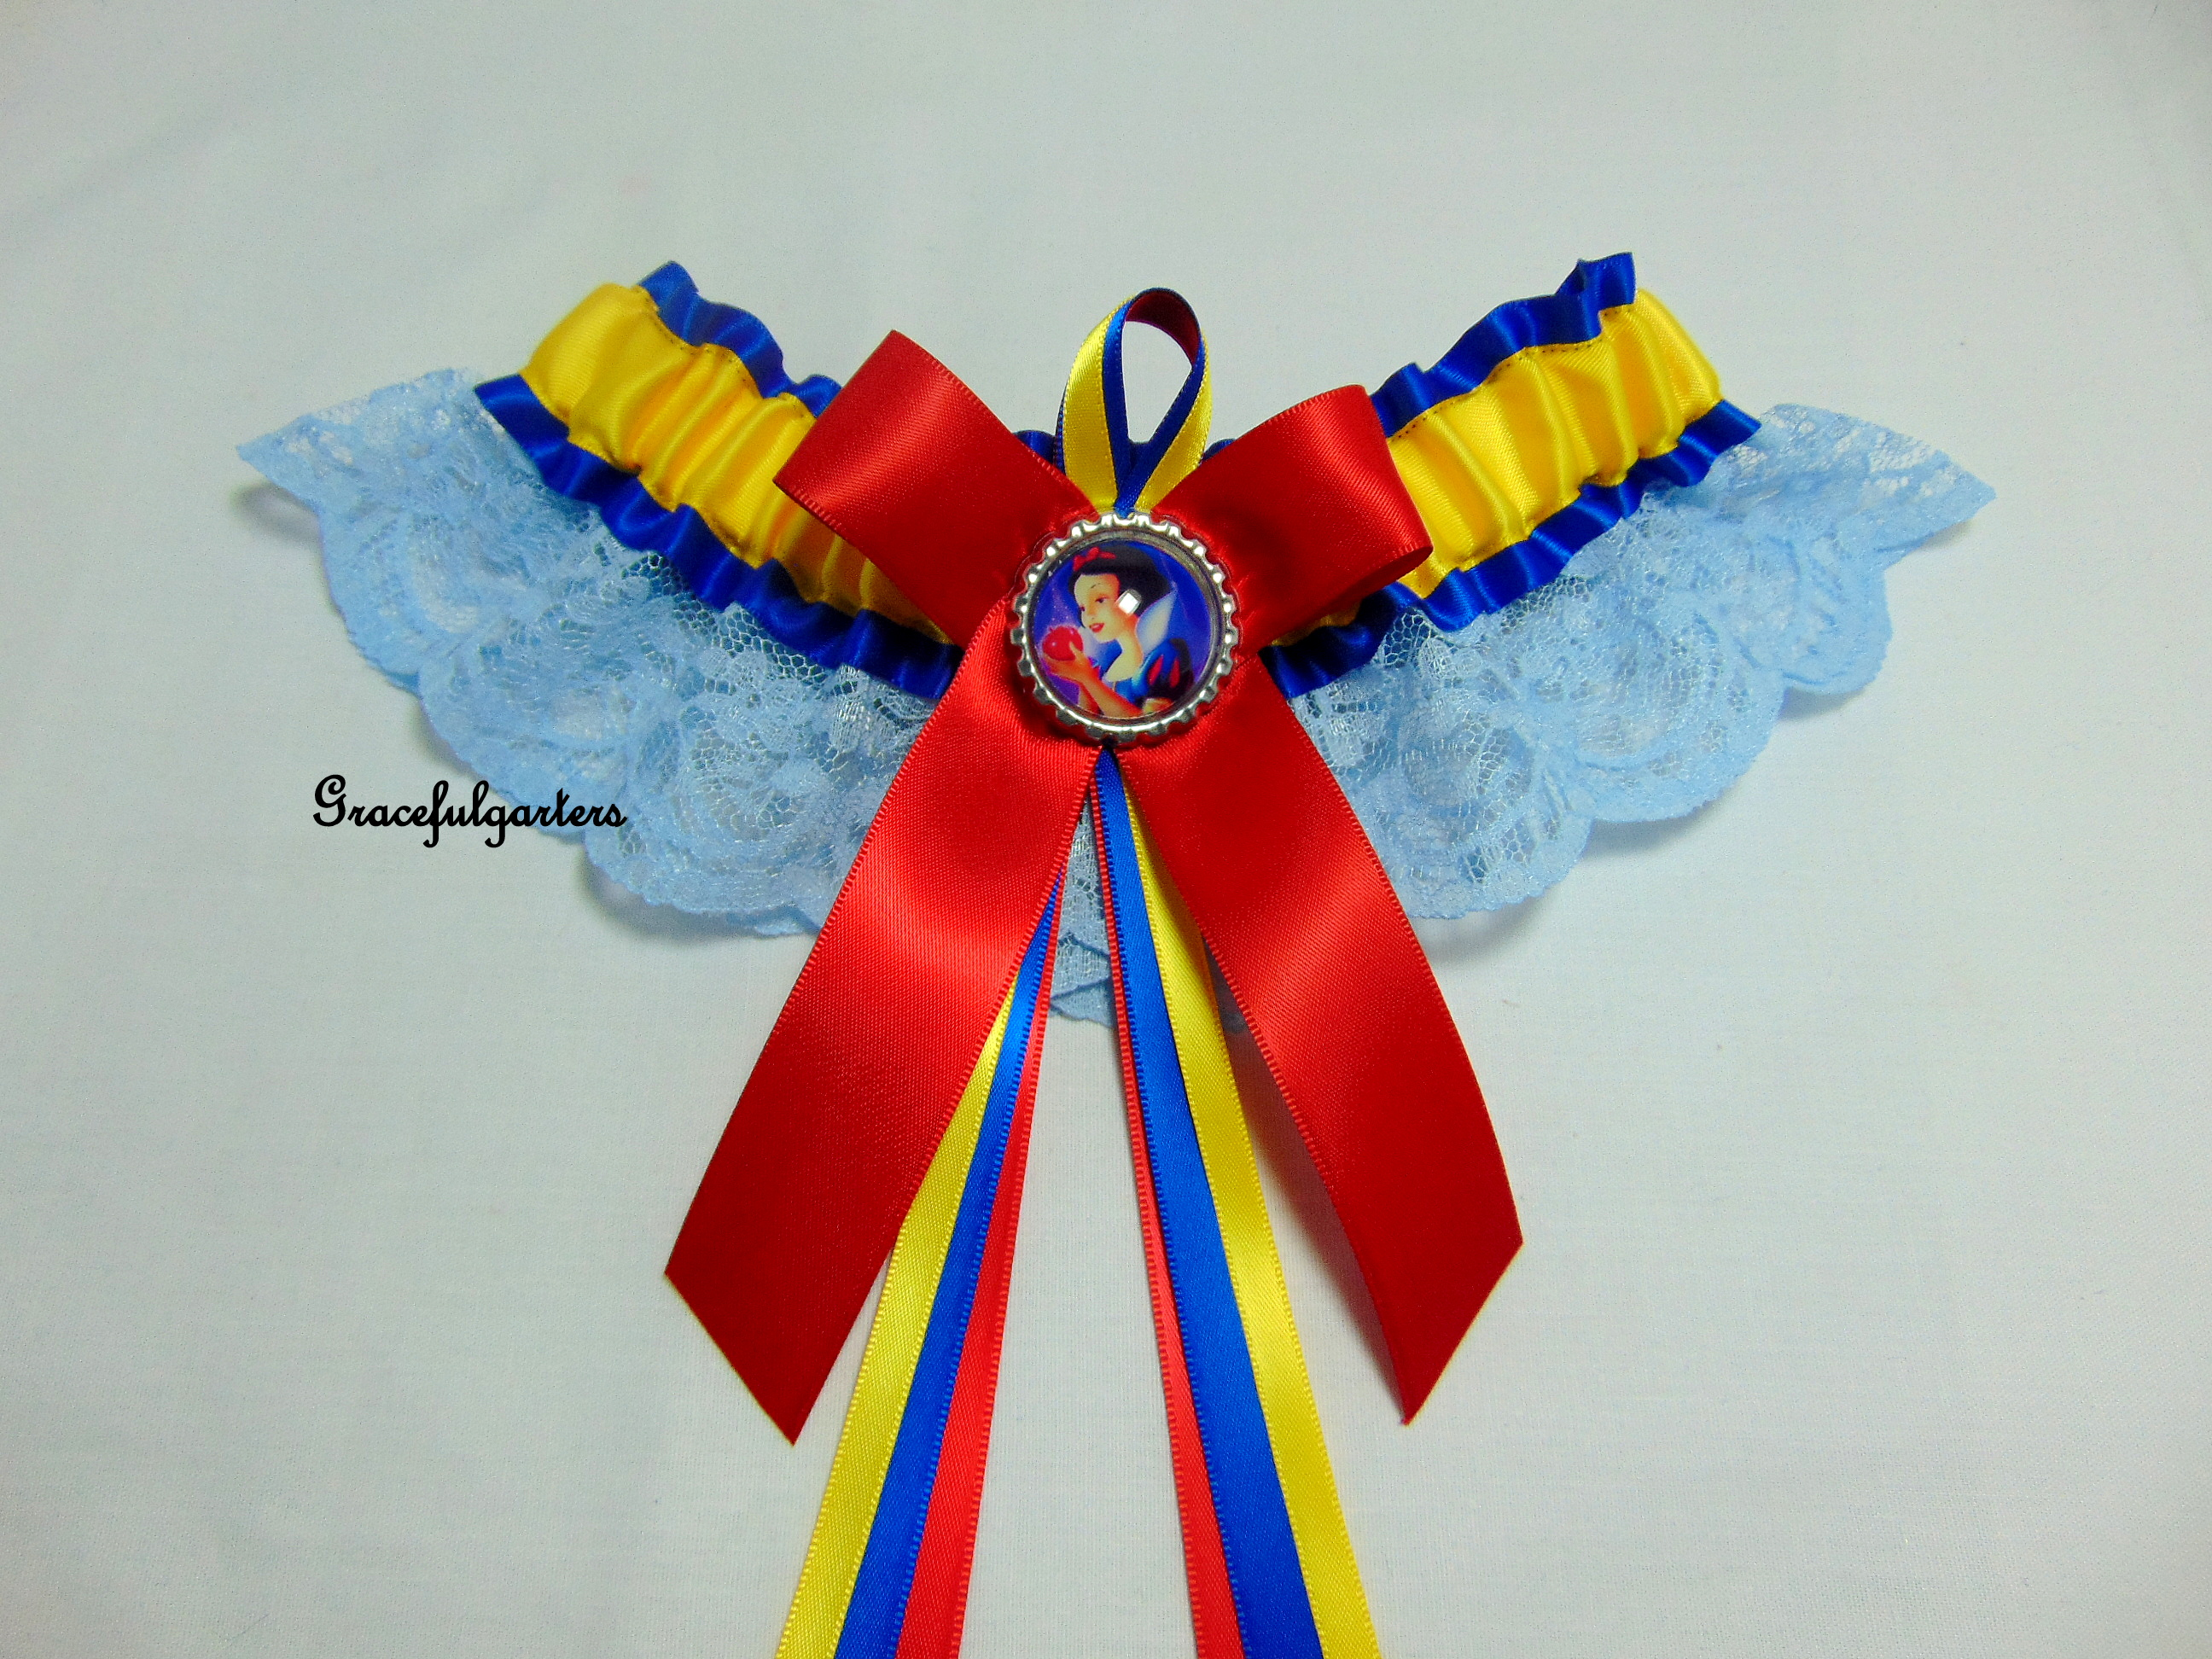 Disney Snow White Lace Bridal Wedding Garter